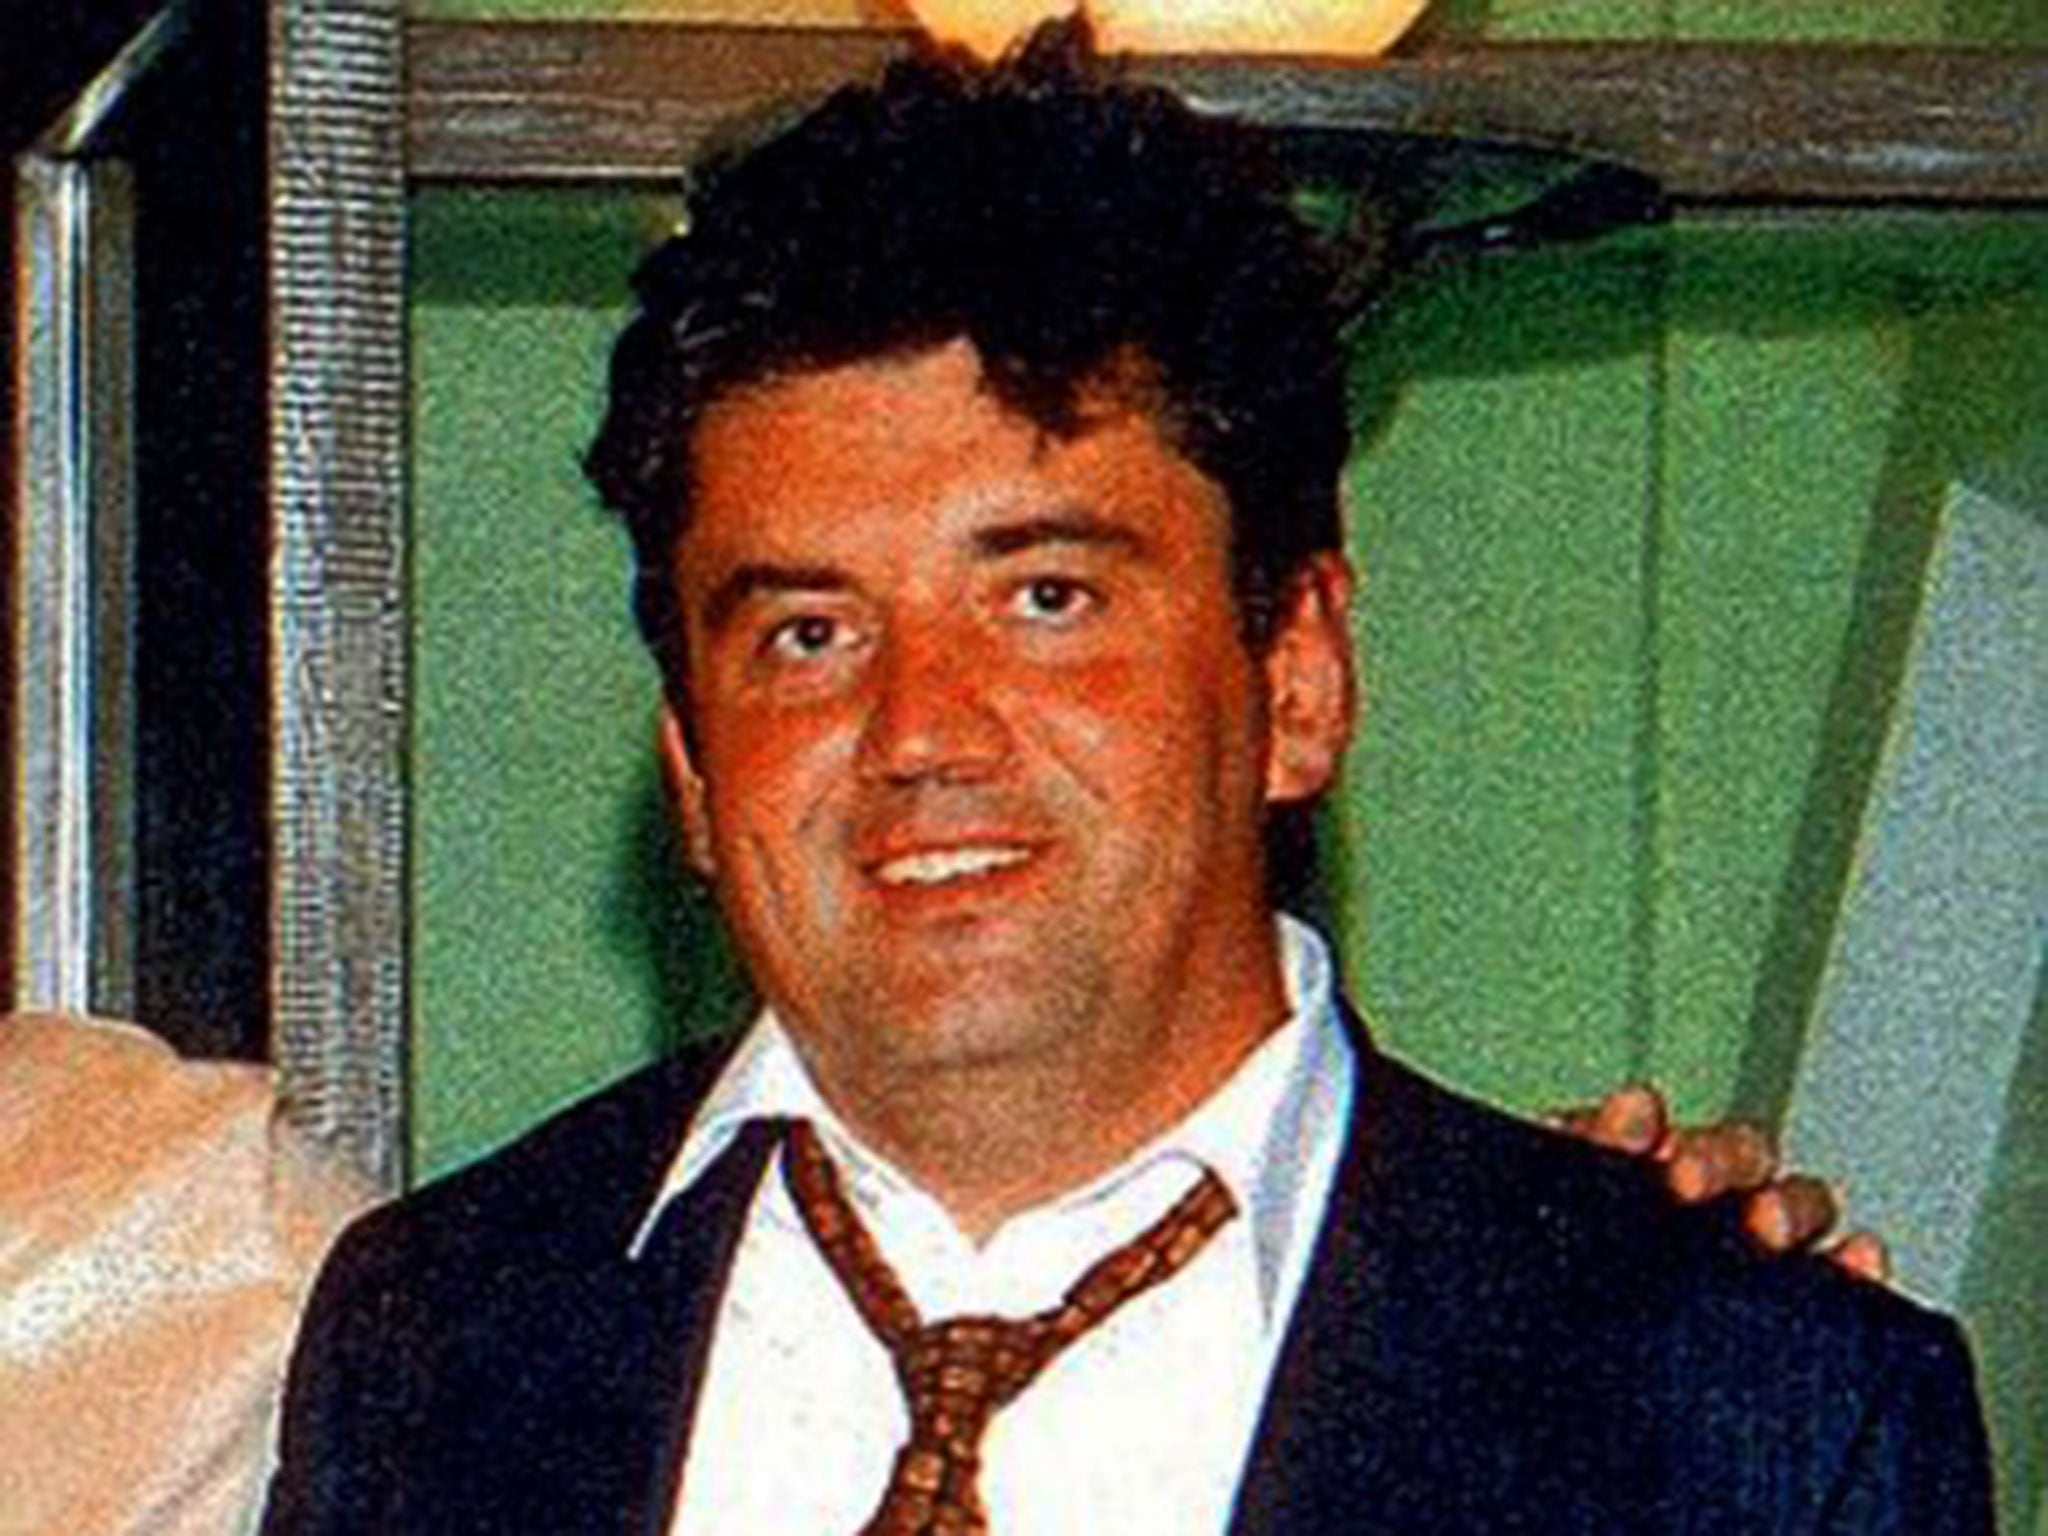 Police investigating Russian whistleblower Alexander Perepilichnyy's death kept bosses in the dark, confidential police papers reveal